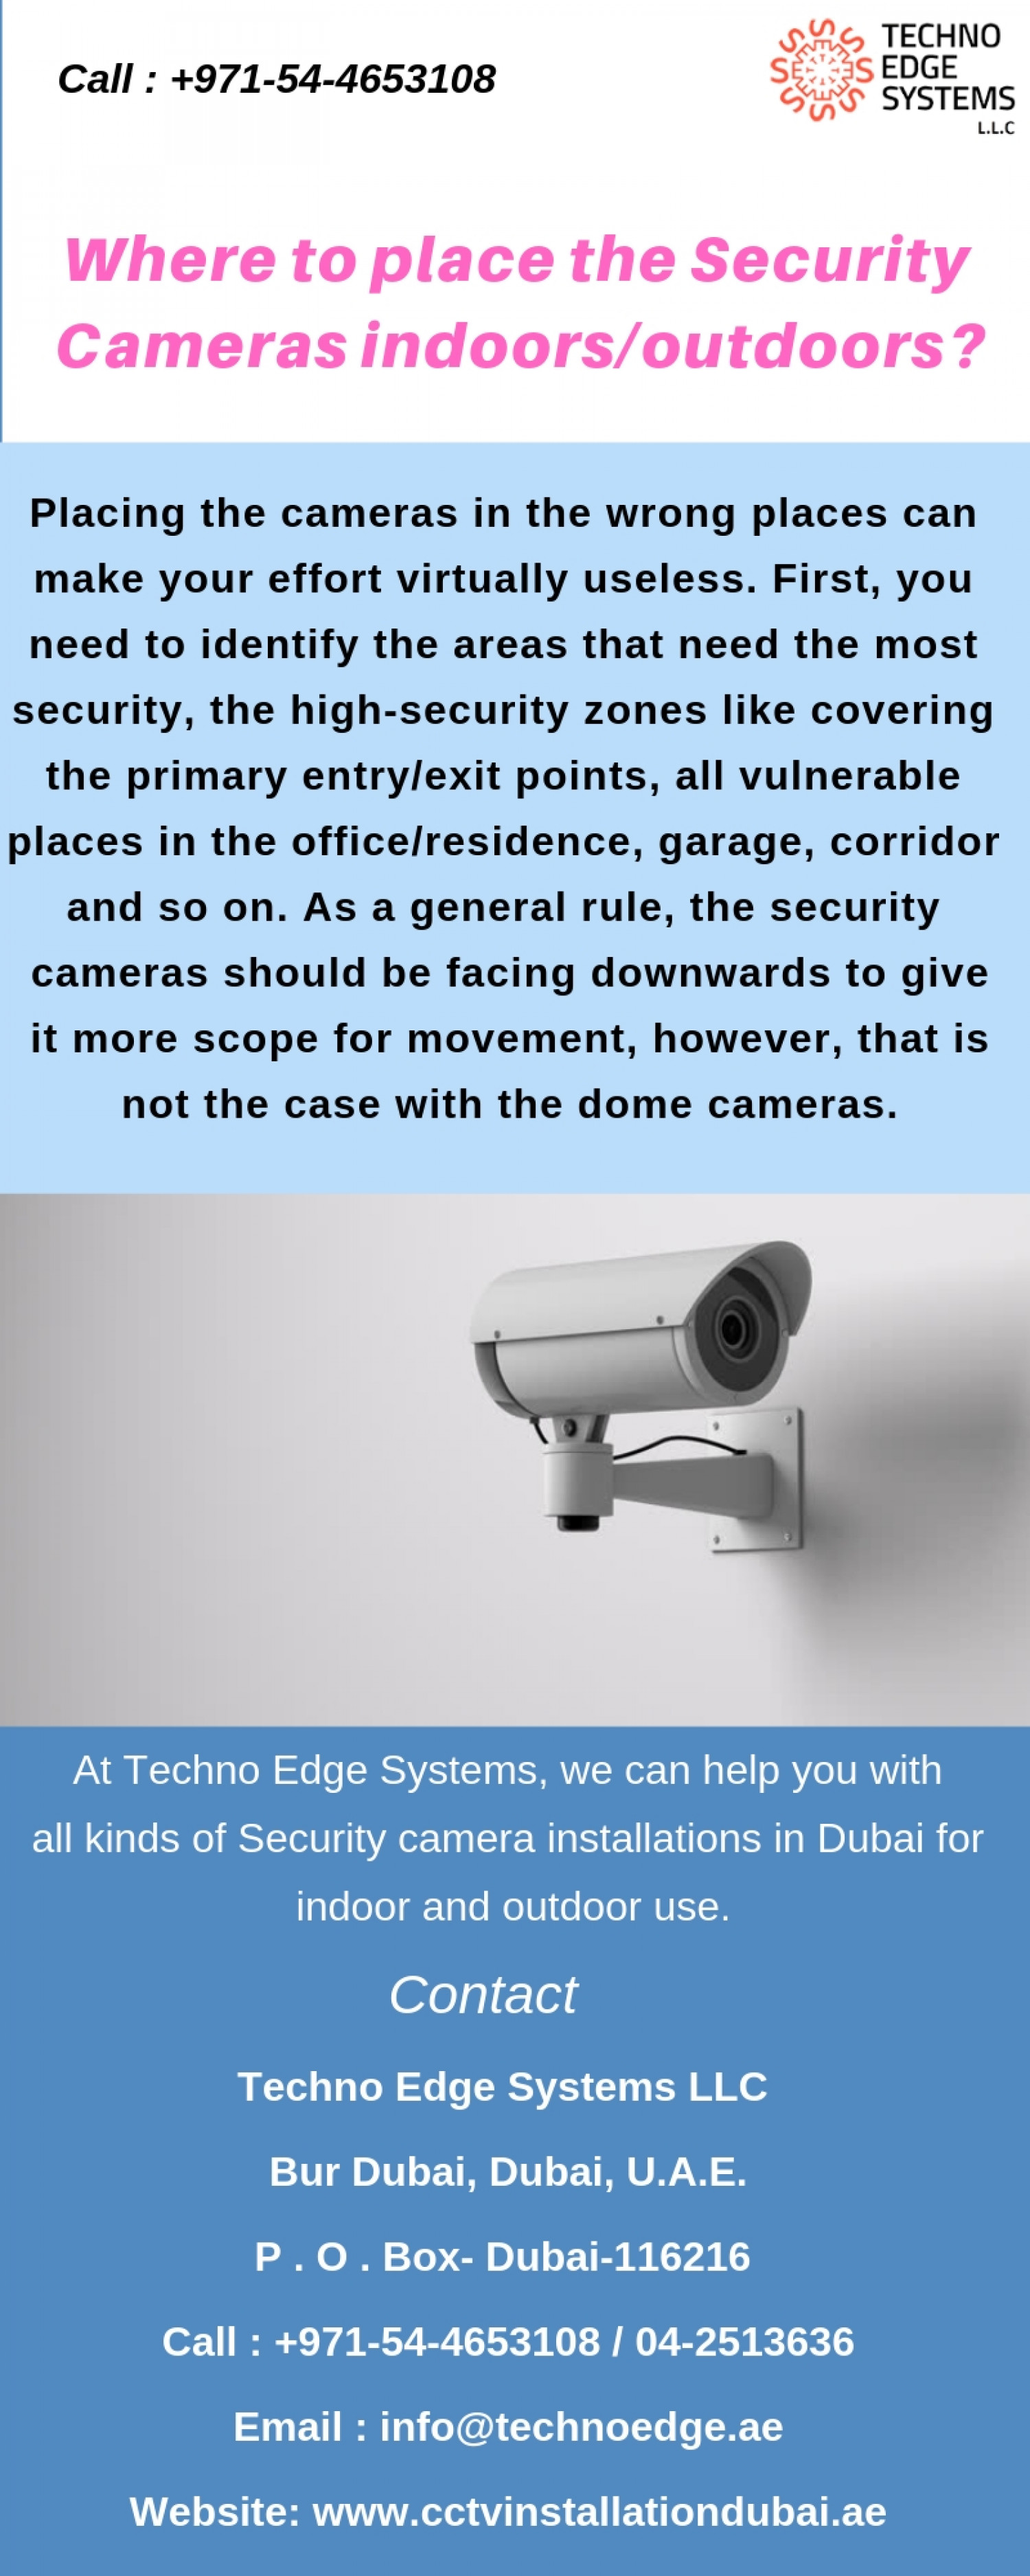 Where to place the Security Cameras indoors/outdoors? Infographic